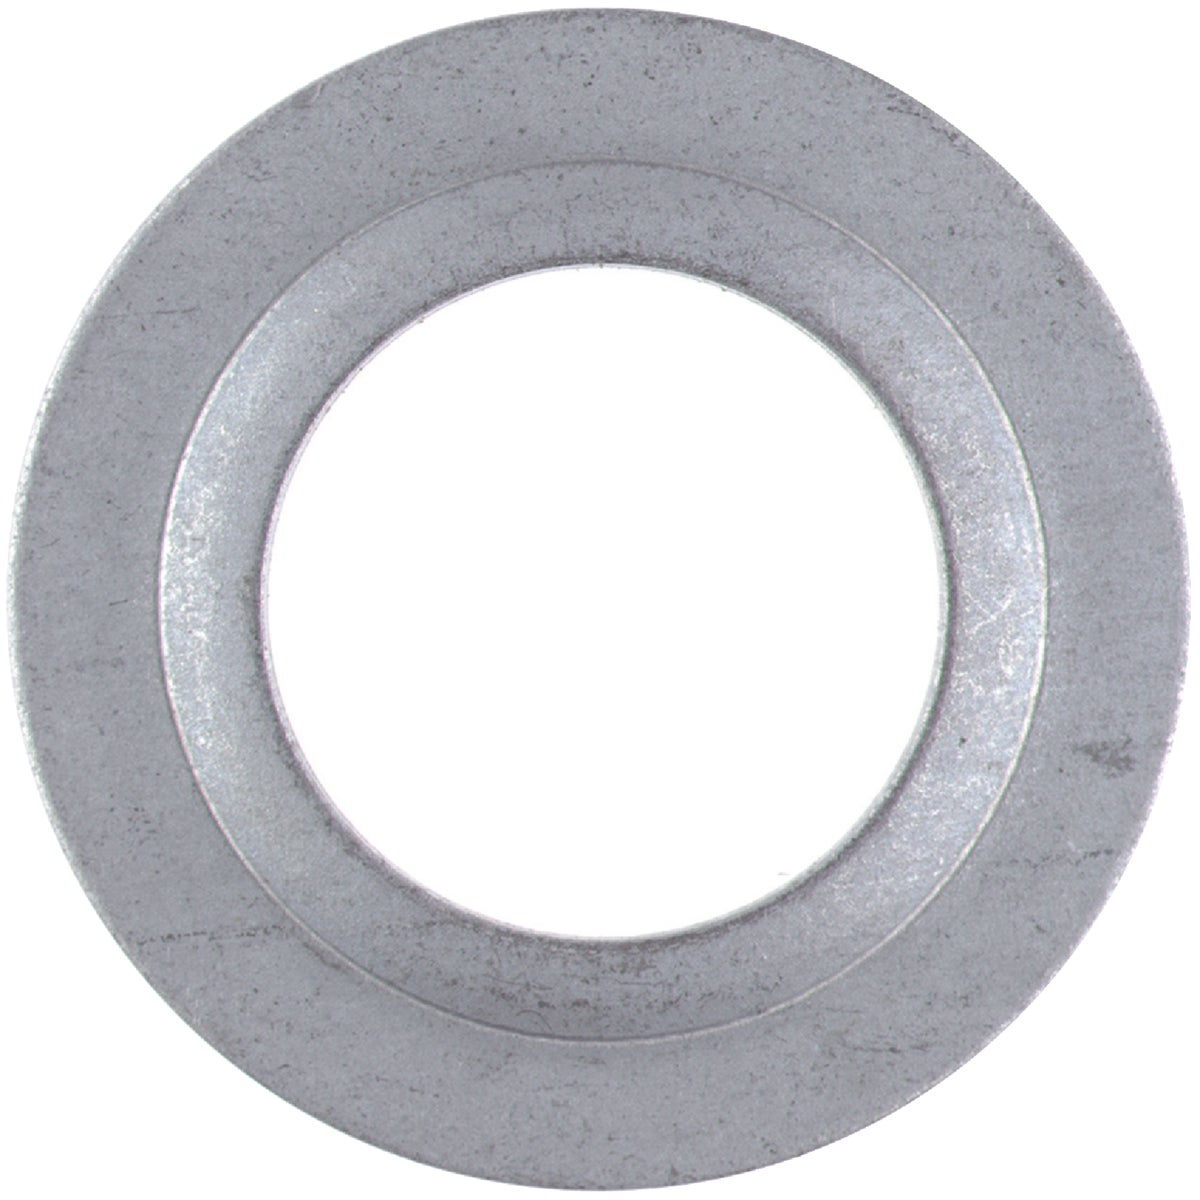 1-1/2X1-1/4 REDUC WASHER - WA1542 by Thomas & Betts